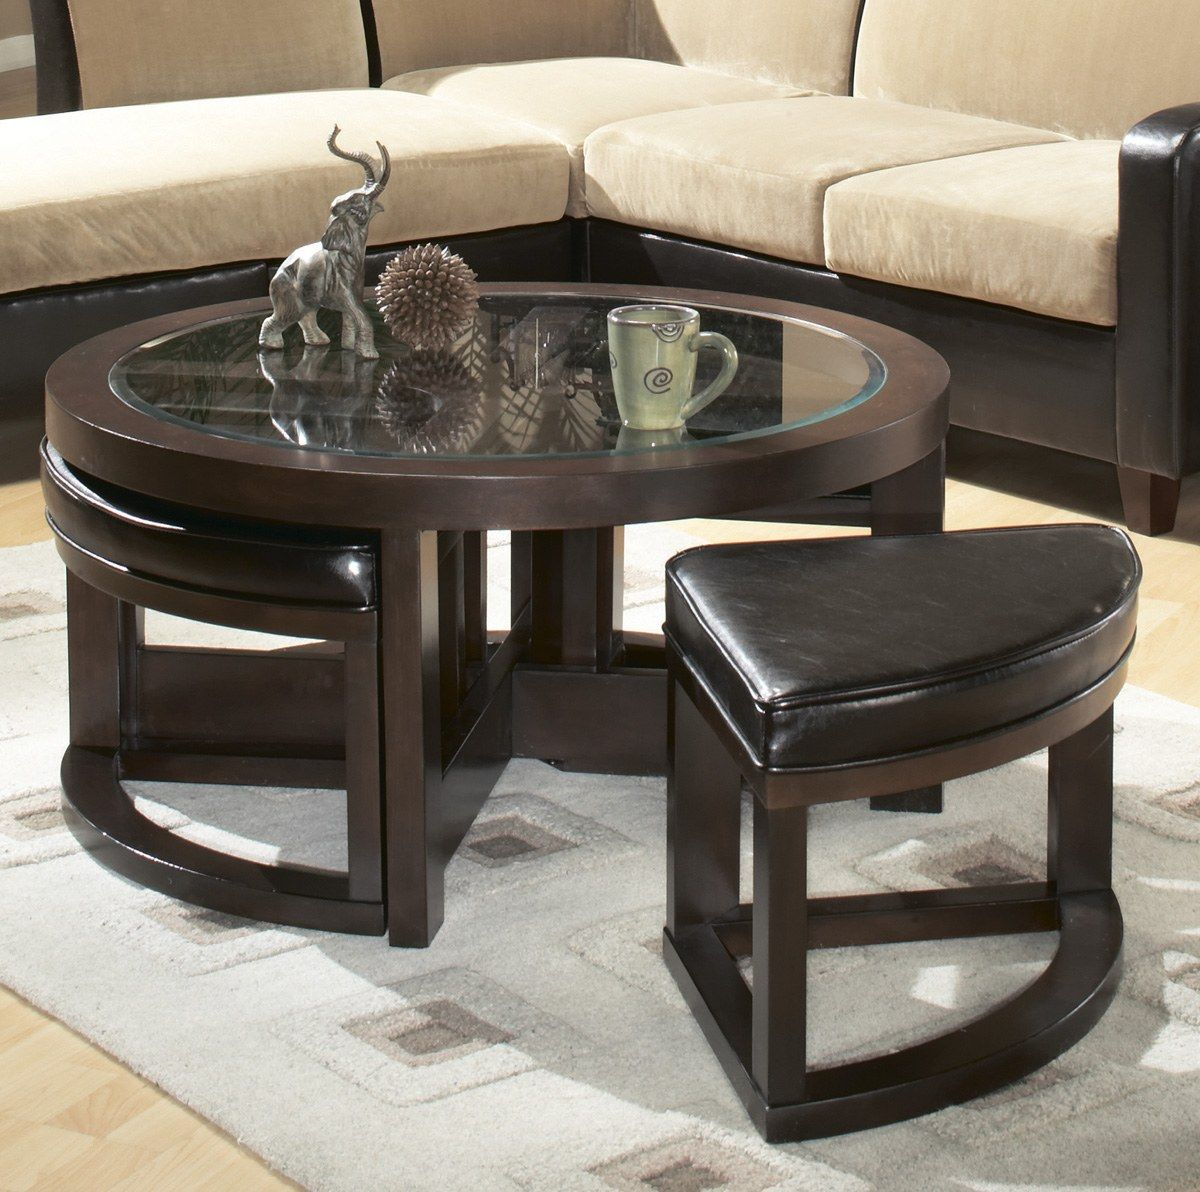 - Marion Coffee Table With Four Wedge-shaped Stools Seamlessly